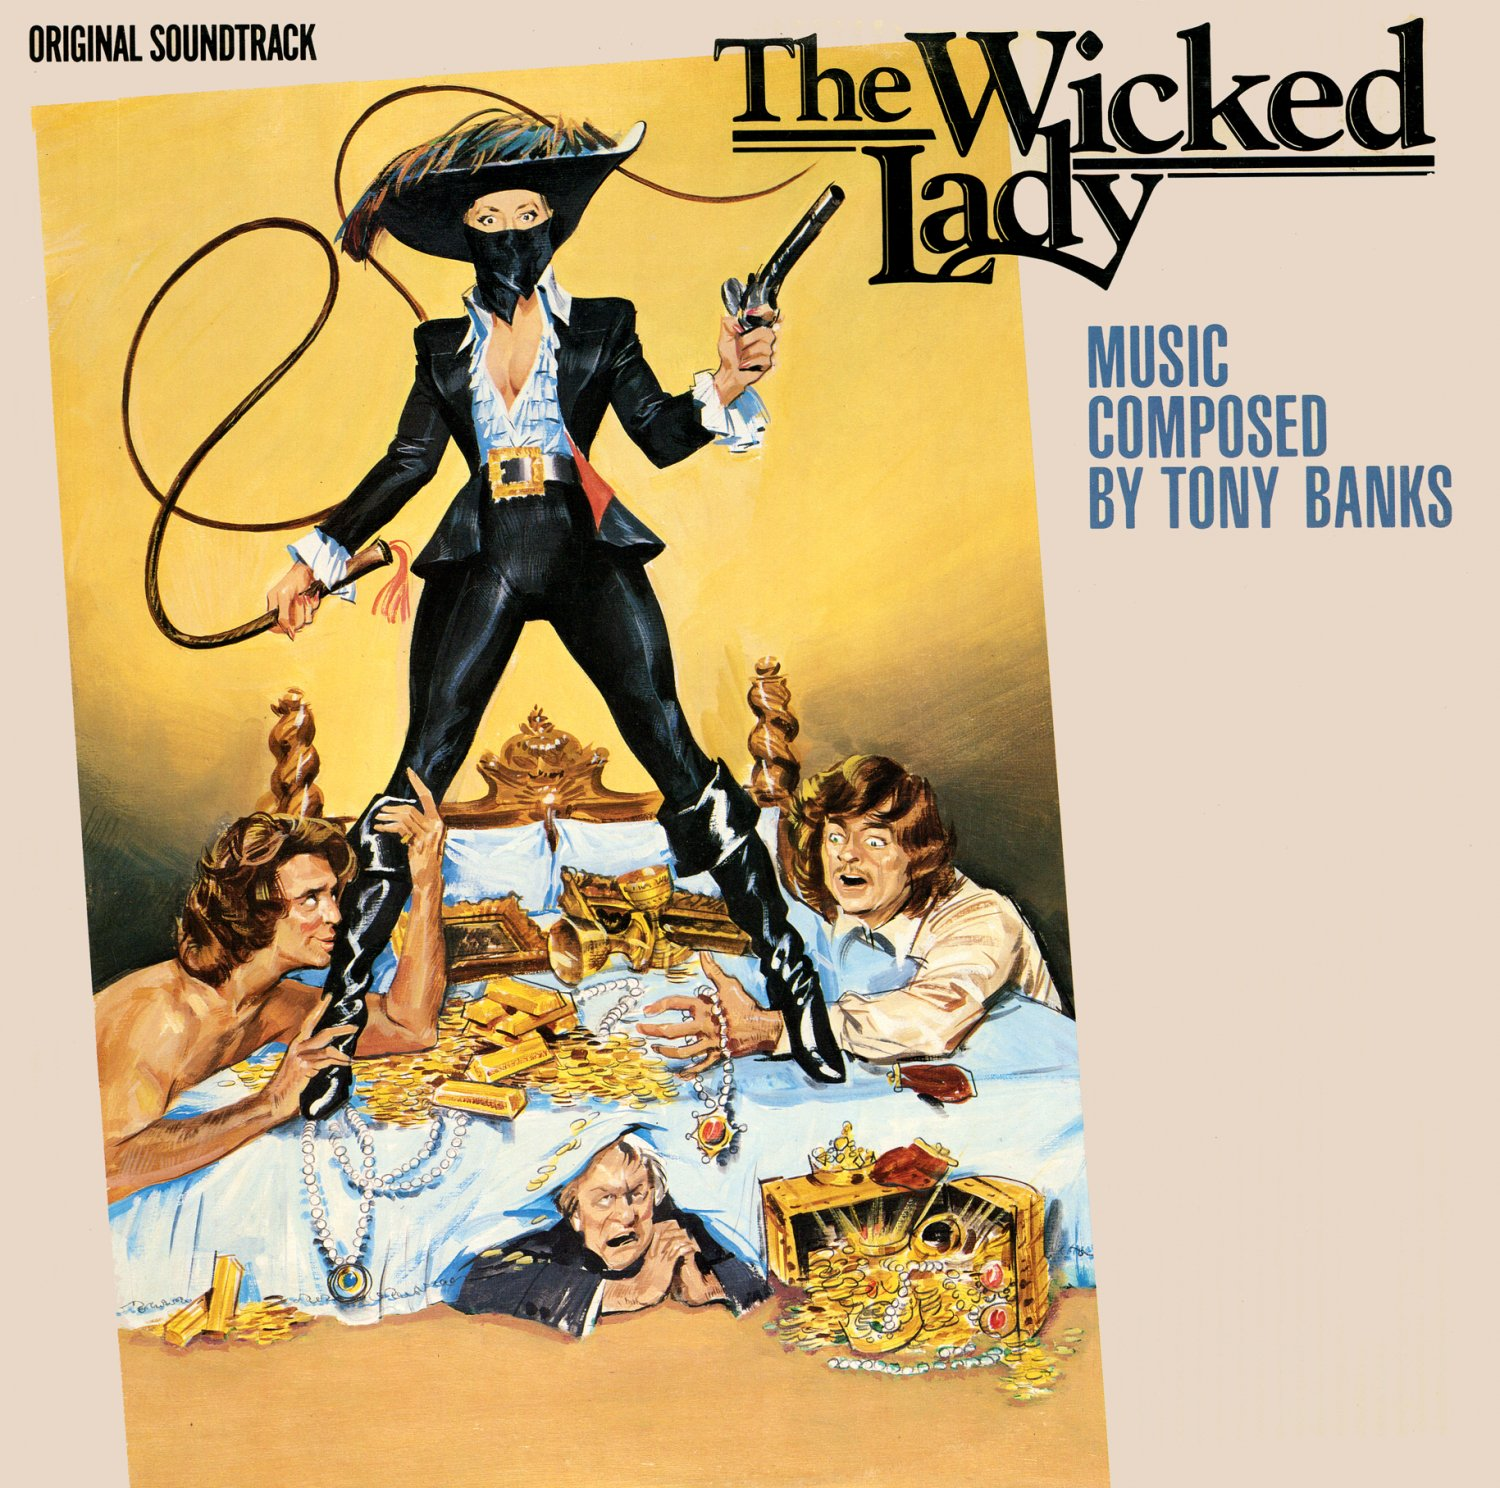 The Wicked Lady - Original Soundtrack, Tony Banks OST LP/CD